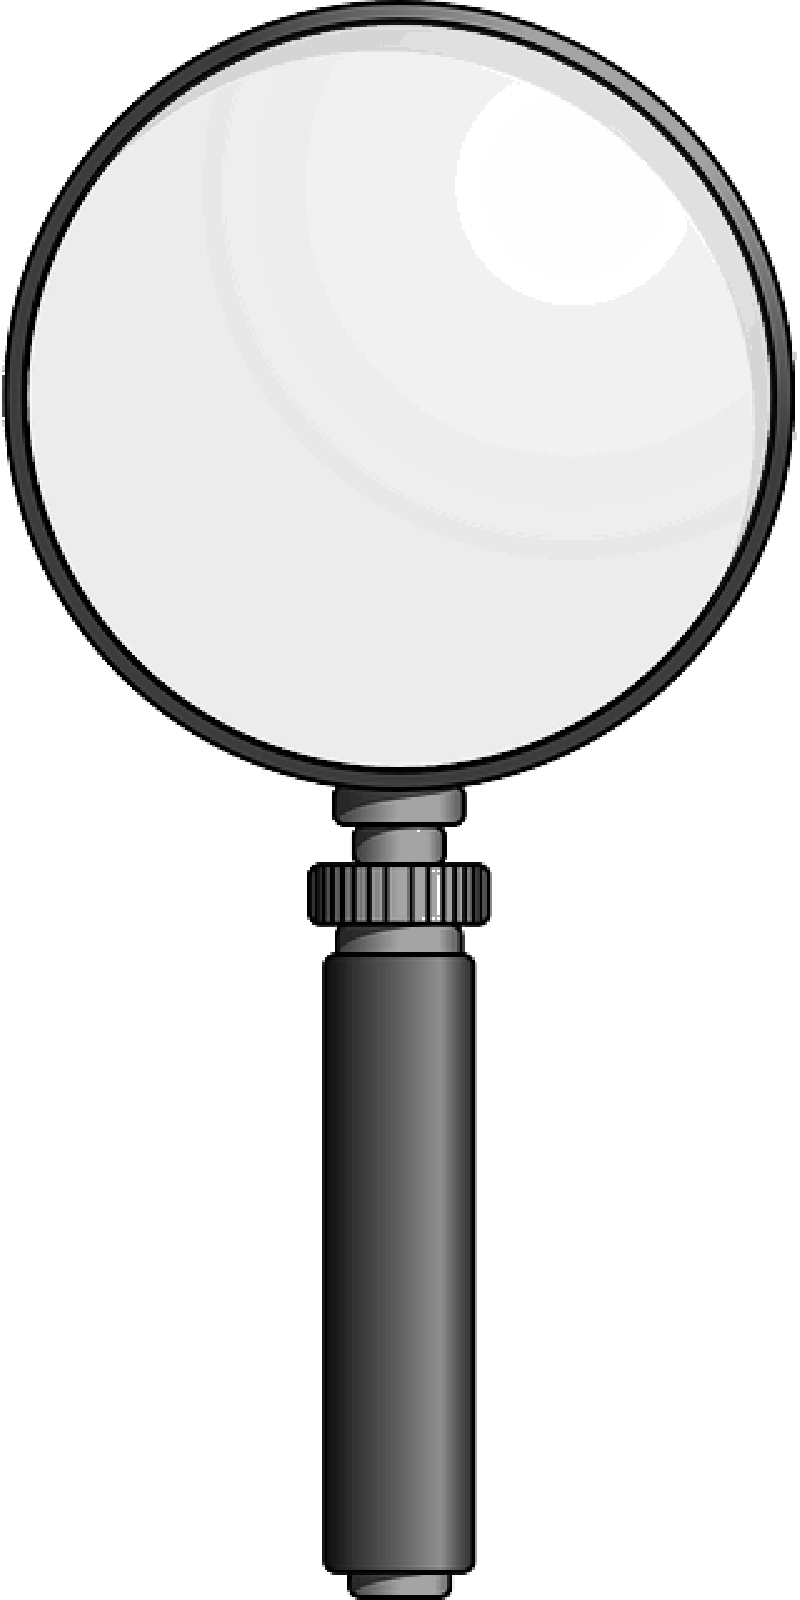 hight resolution of magnifying glas clipart free